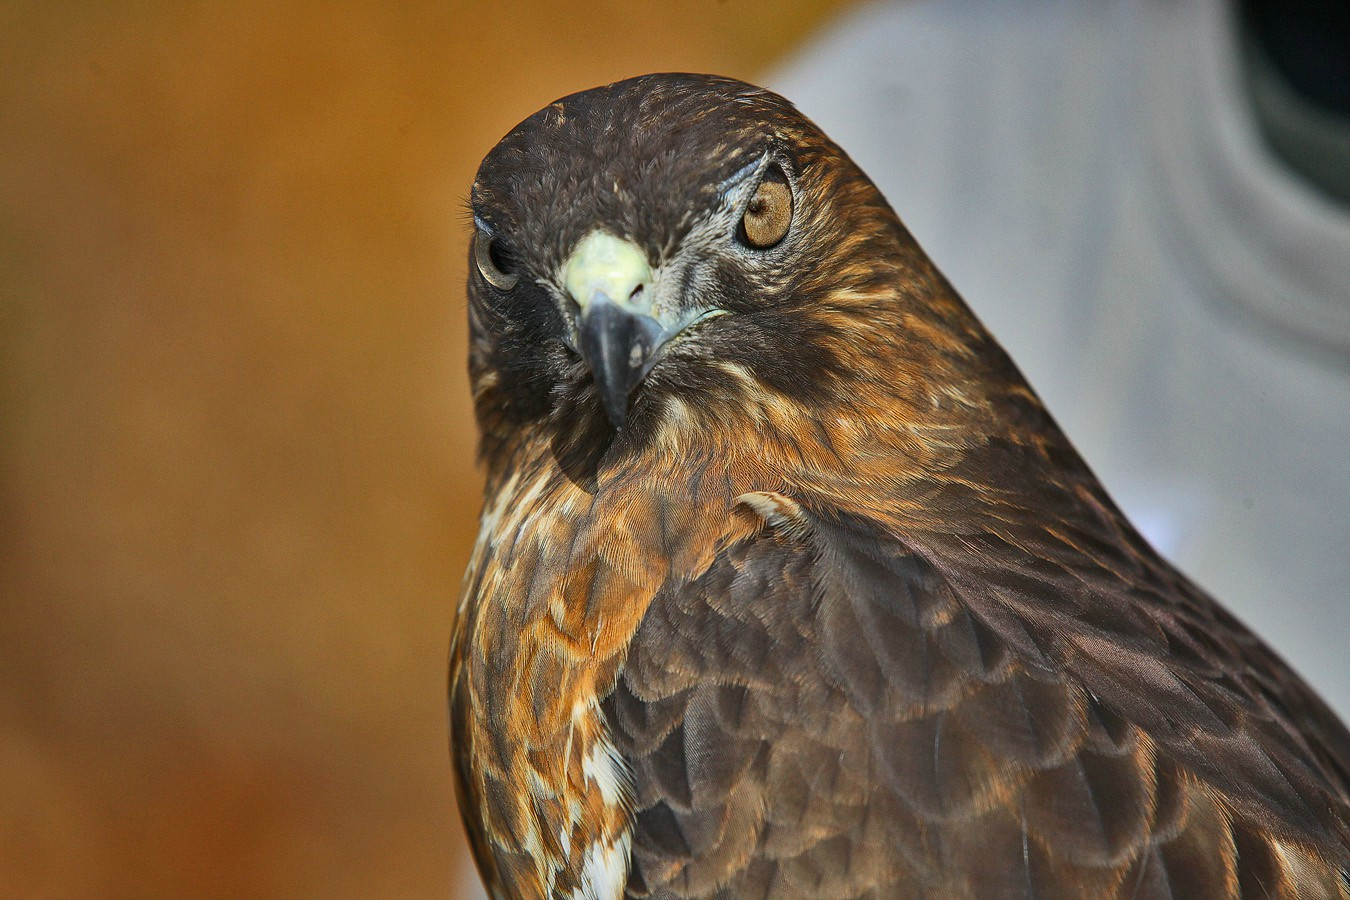 wide tailed hawk blind eye img aw author sava gre gregory and verena